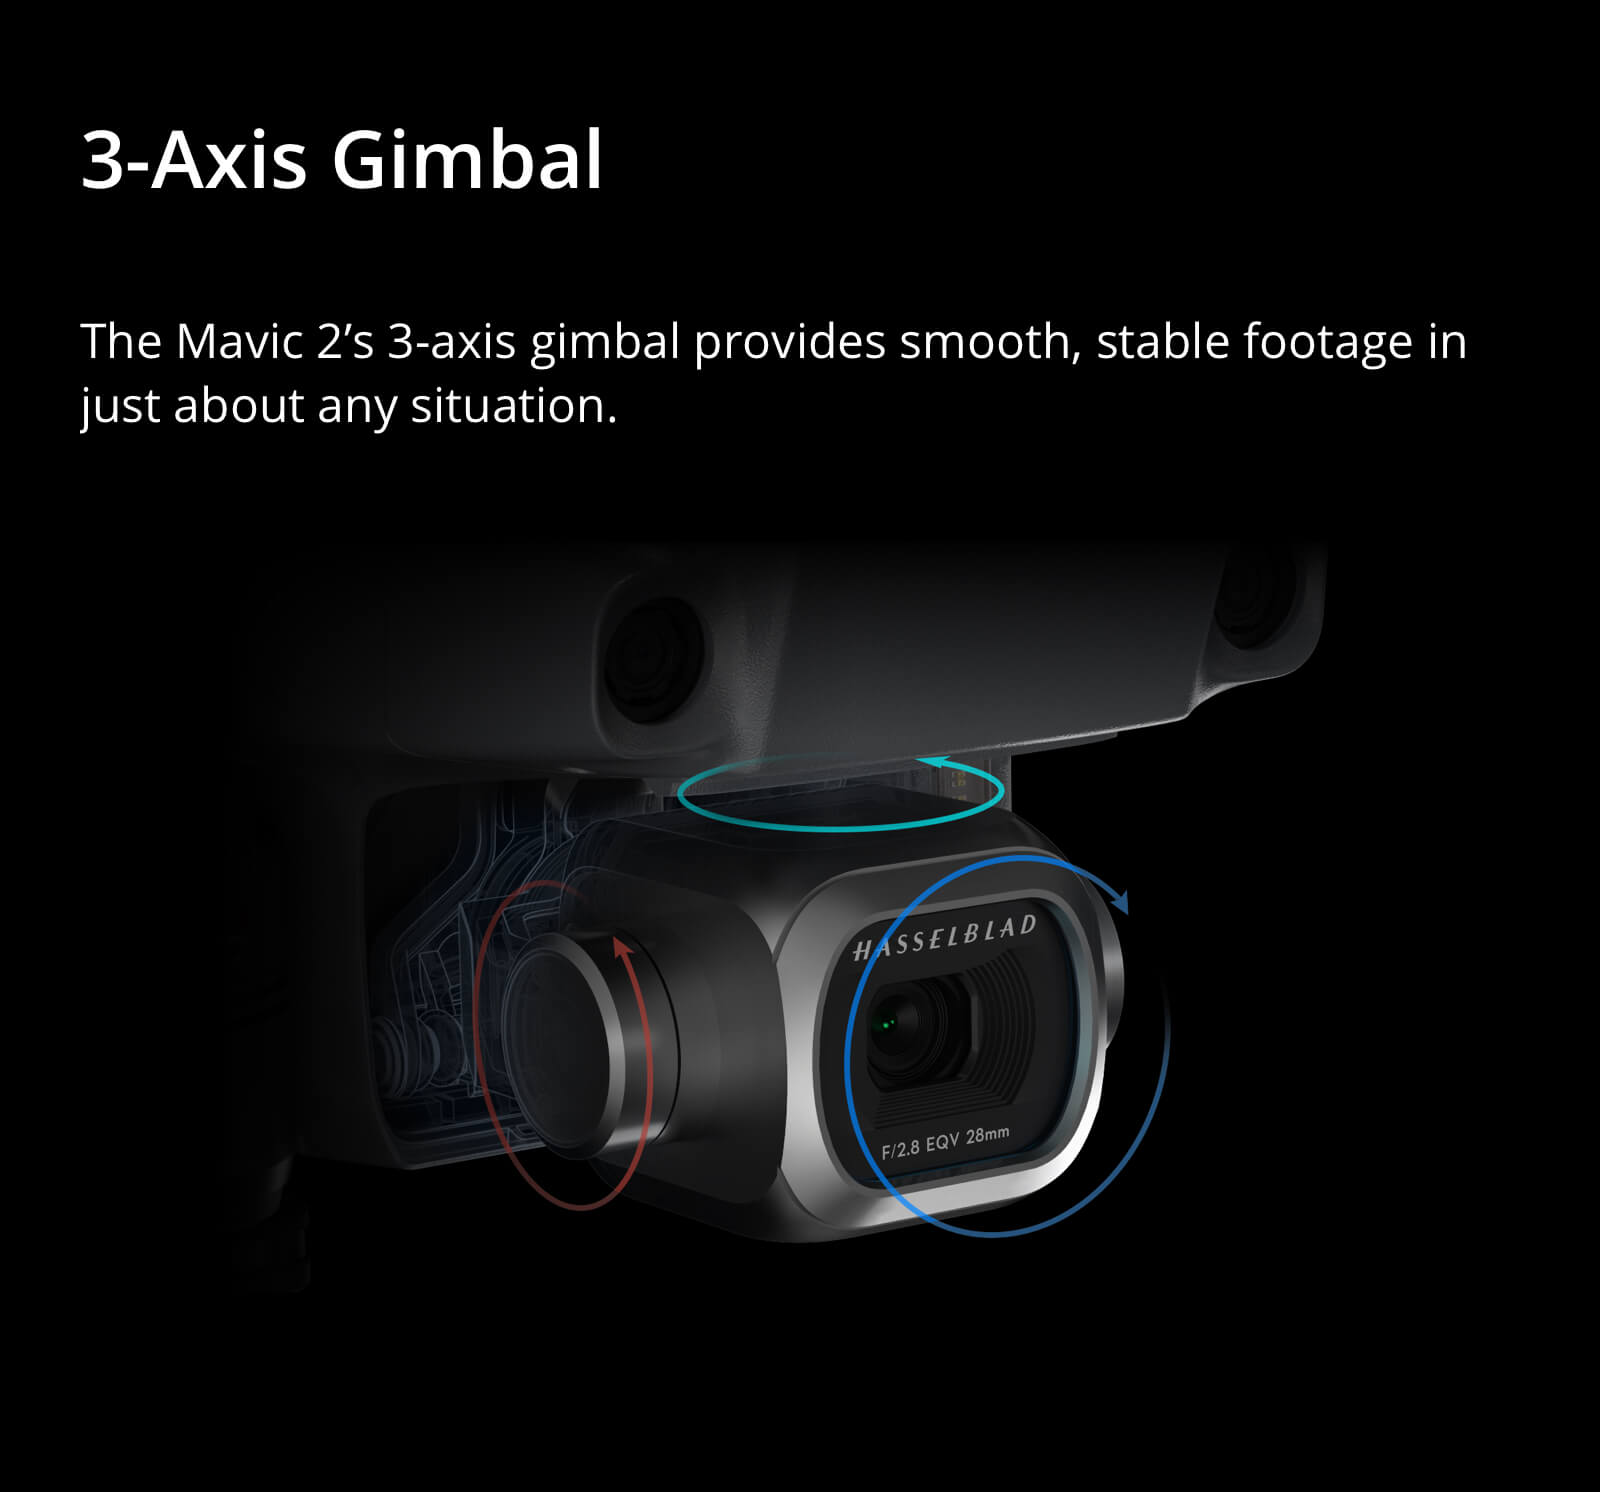 Mavic 2 Zoom Quadcopter - 12MP, 2x Optical Zoom 17